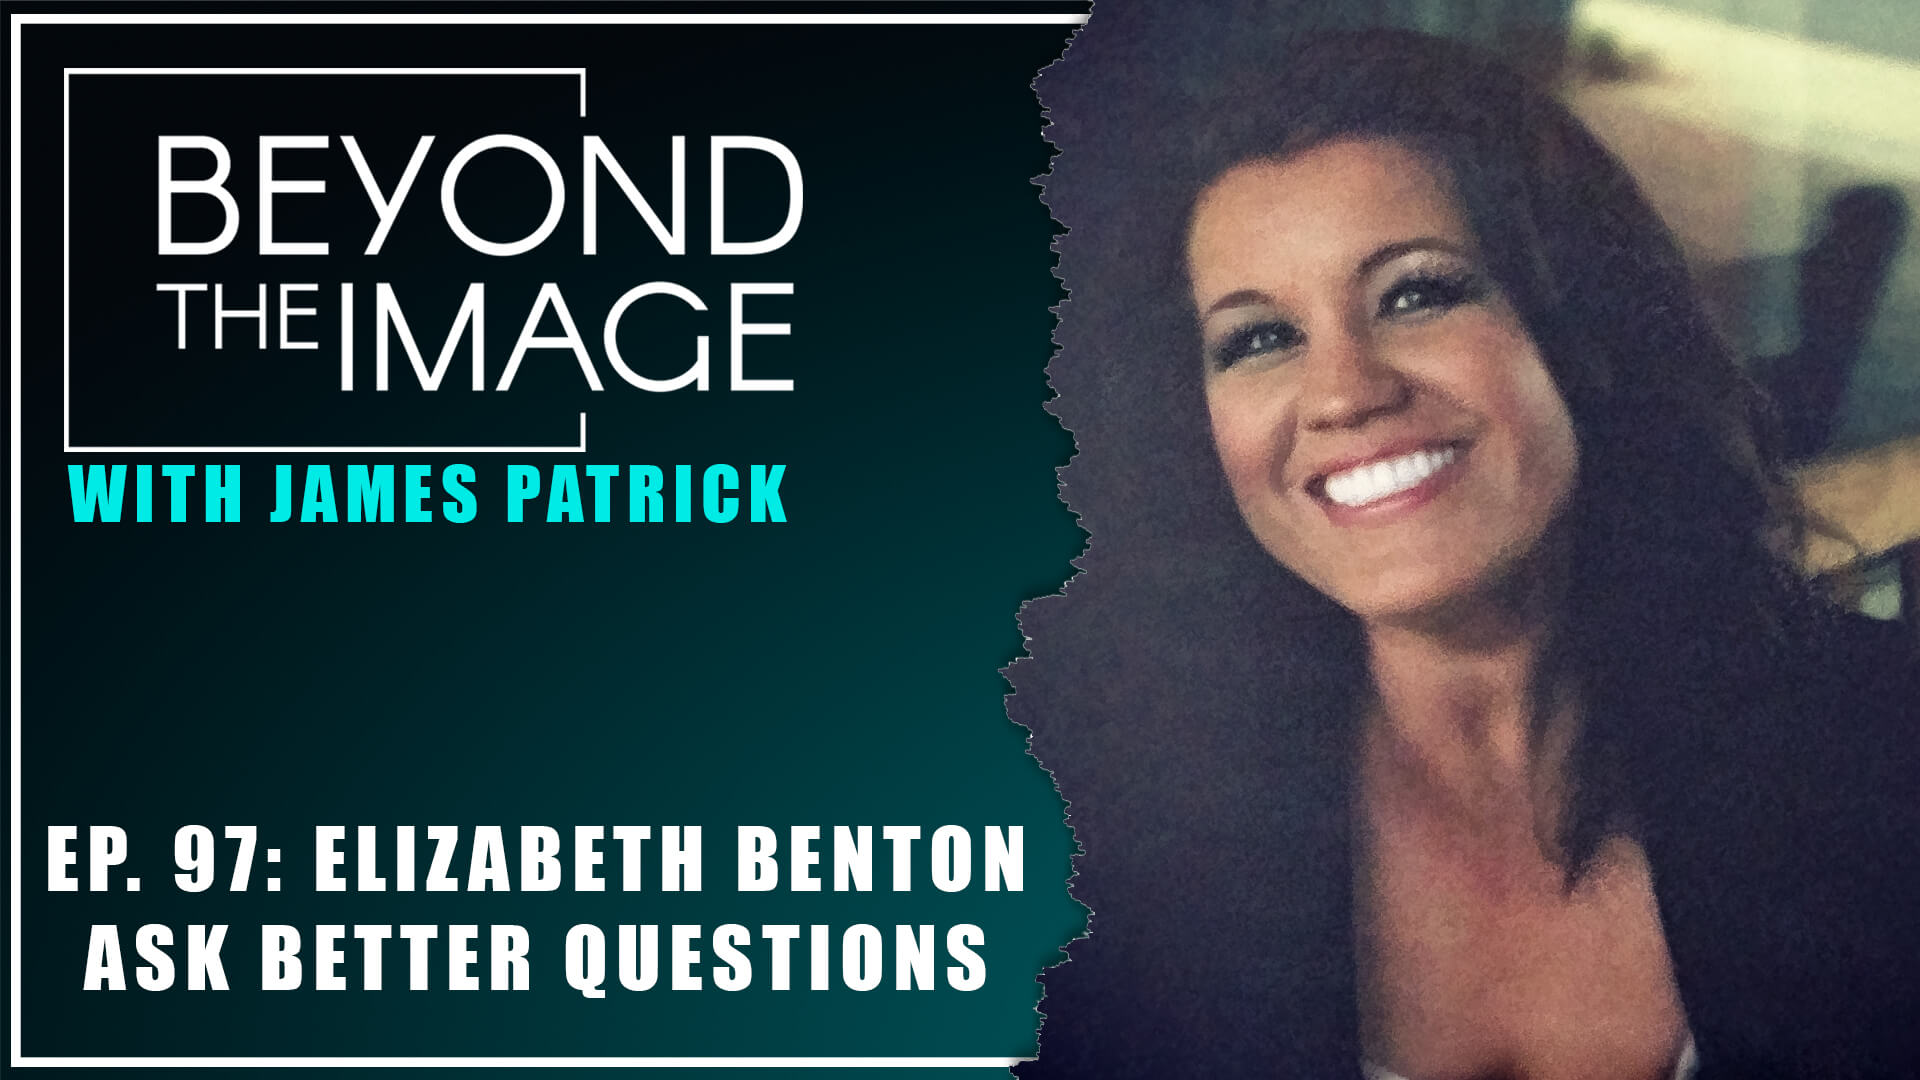 BTI #097: Ask Better Questions with Elizabeth Benton